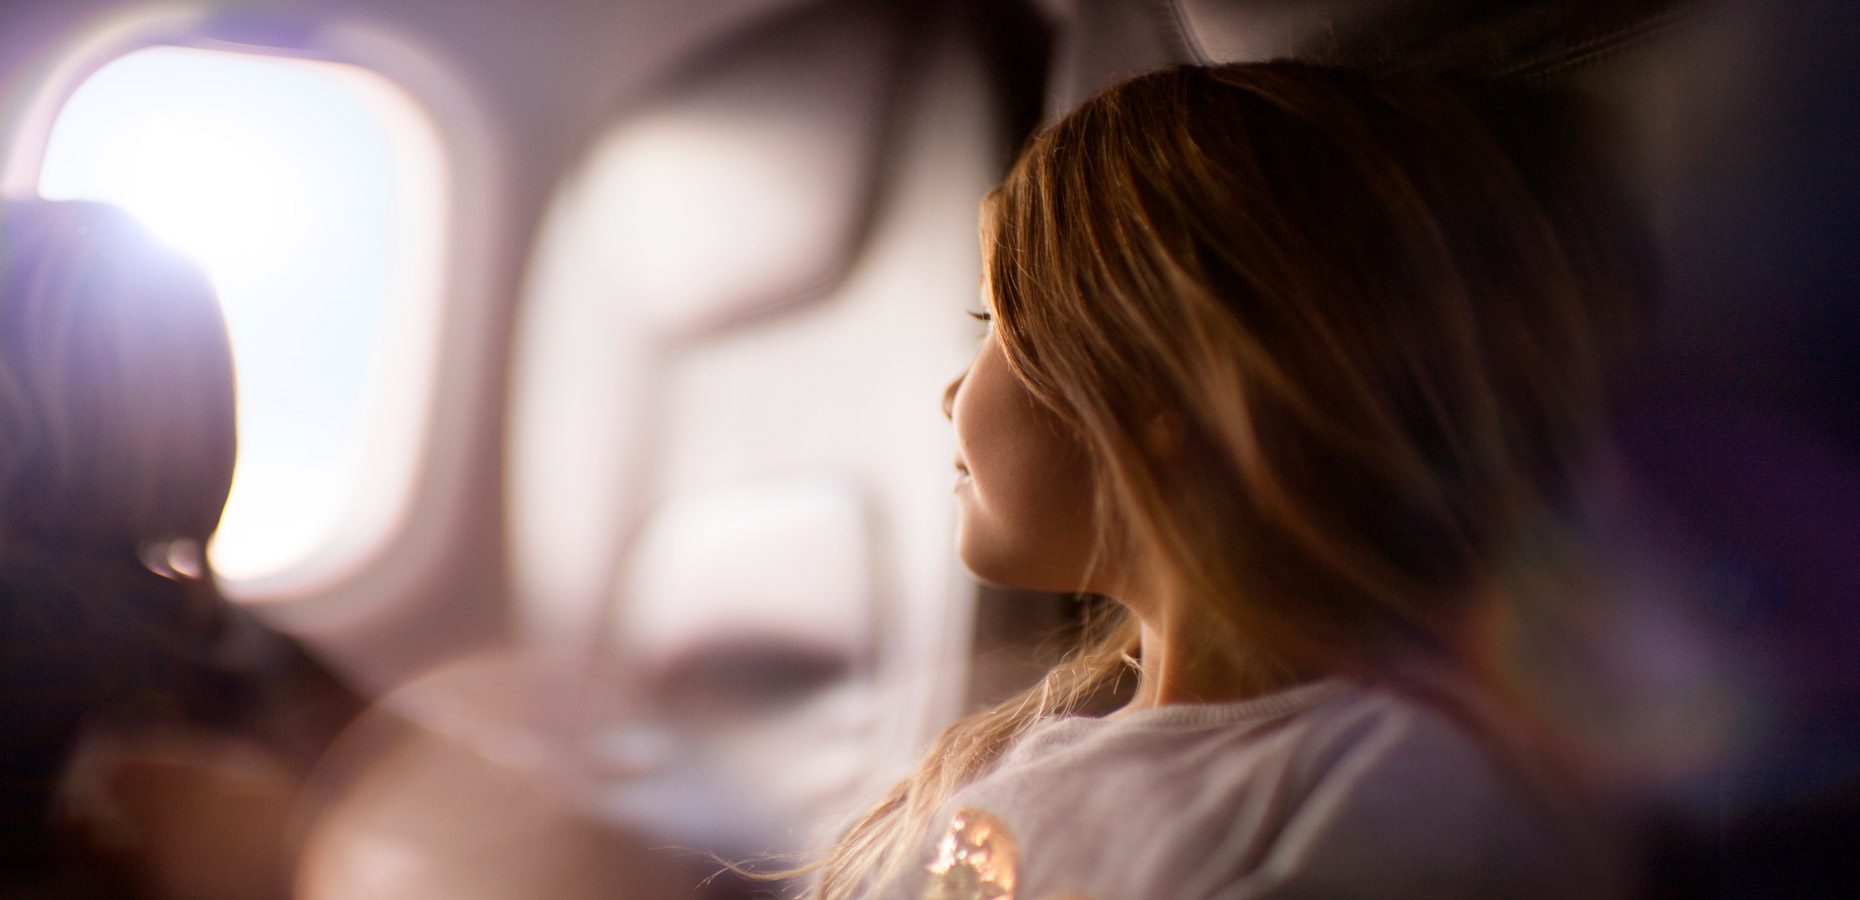 AIRNZ_ONBOARD_GIRL_DREAMING_5464x4096